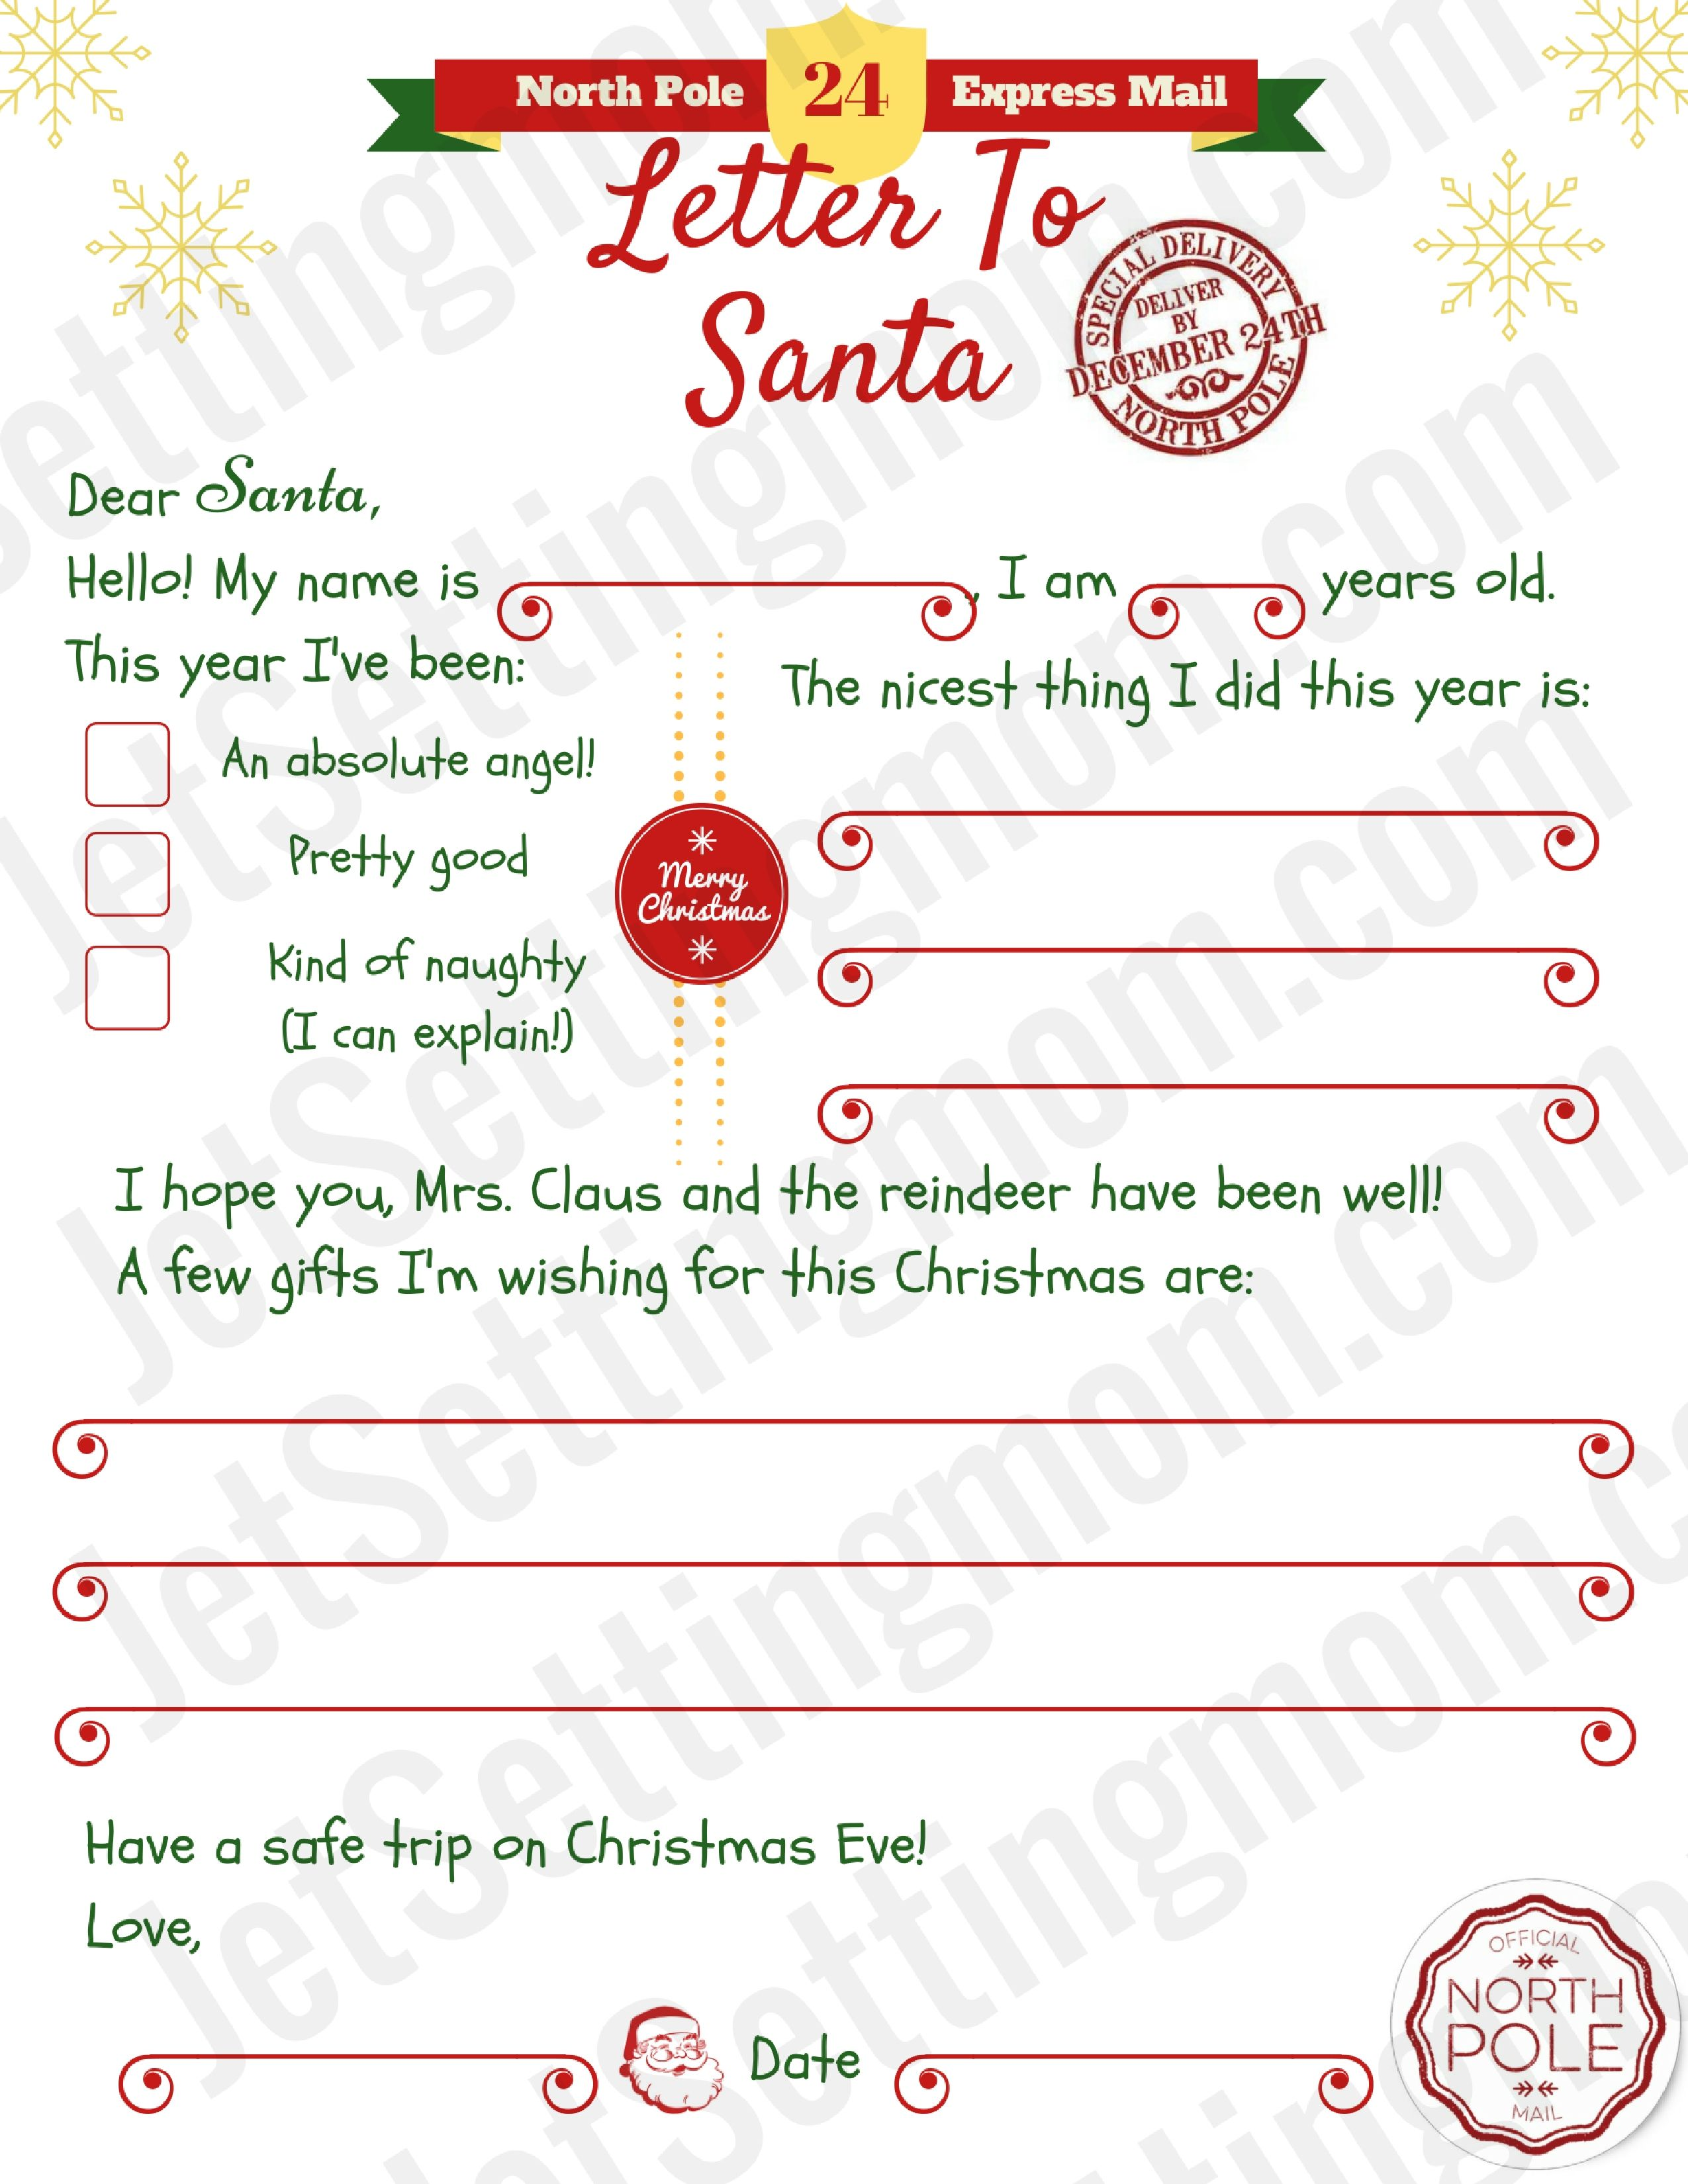 Printable letter to santa template free santa letter printable printable letter to santa template free santa letter printable spiritdancerdesigns Image collections